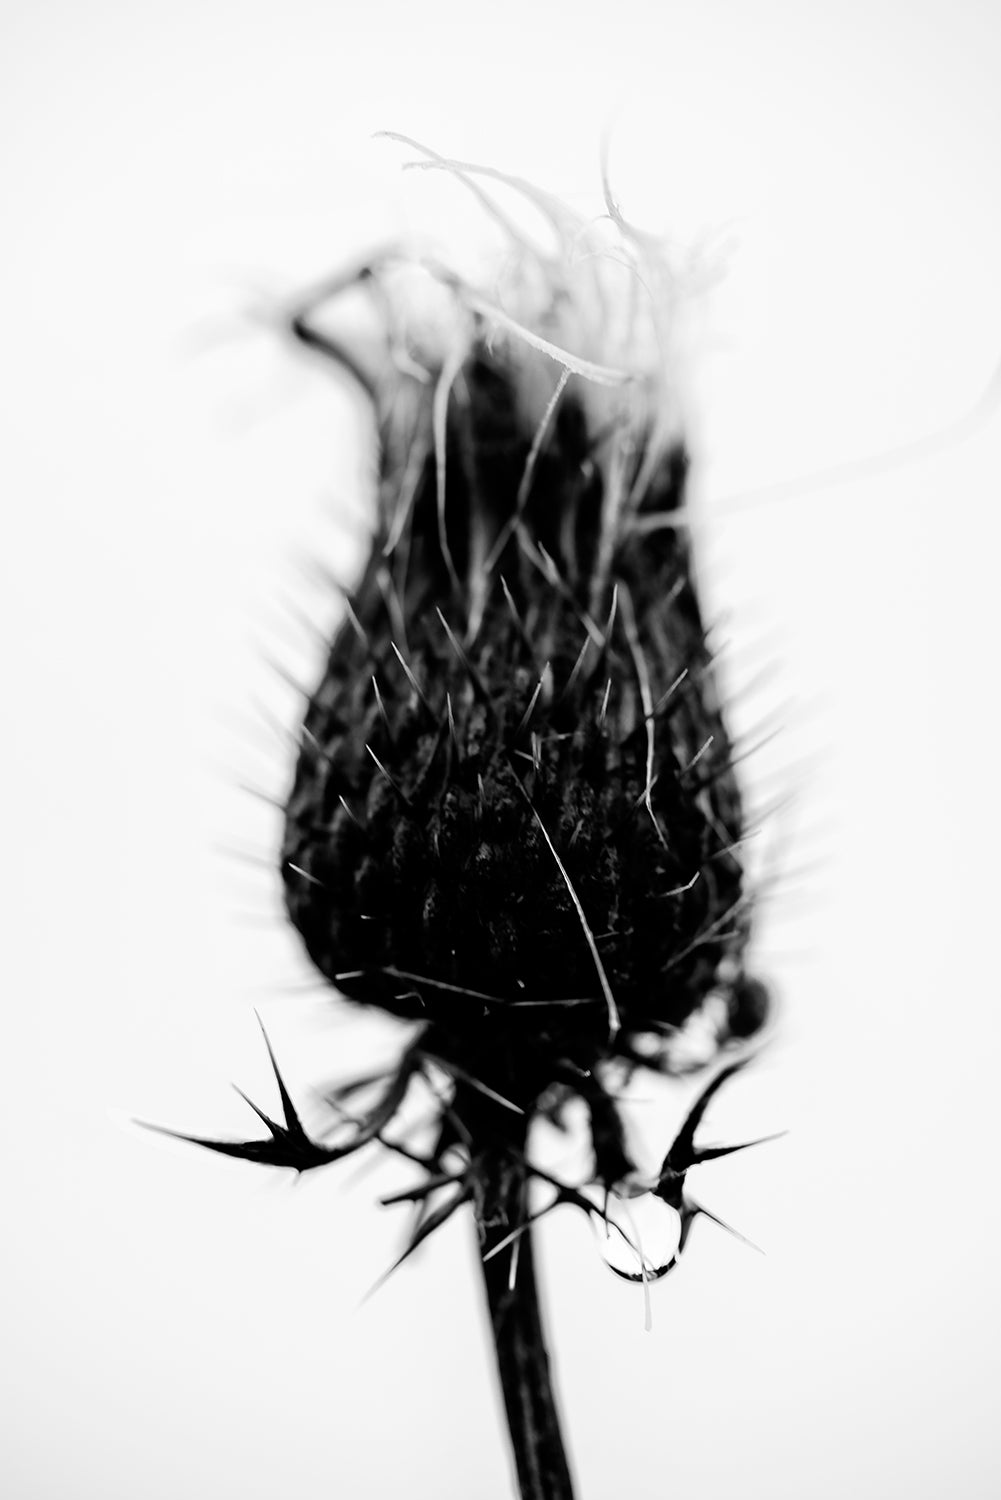 Rainy Day Thistle. Black and White Photograph by Keith Dotson. Click to buy a fine art print.